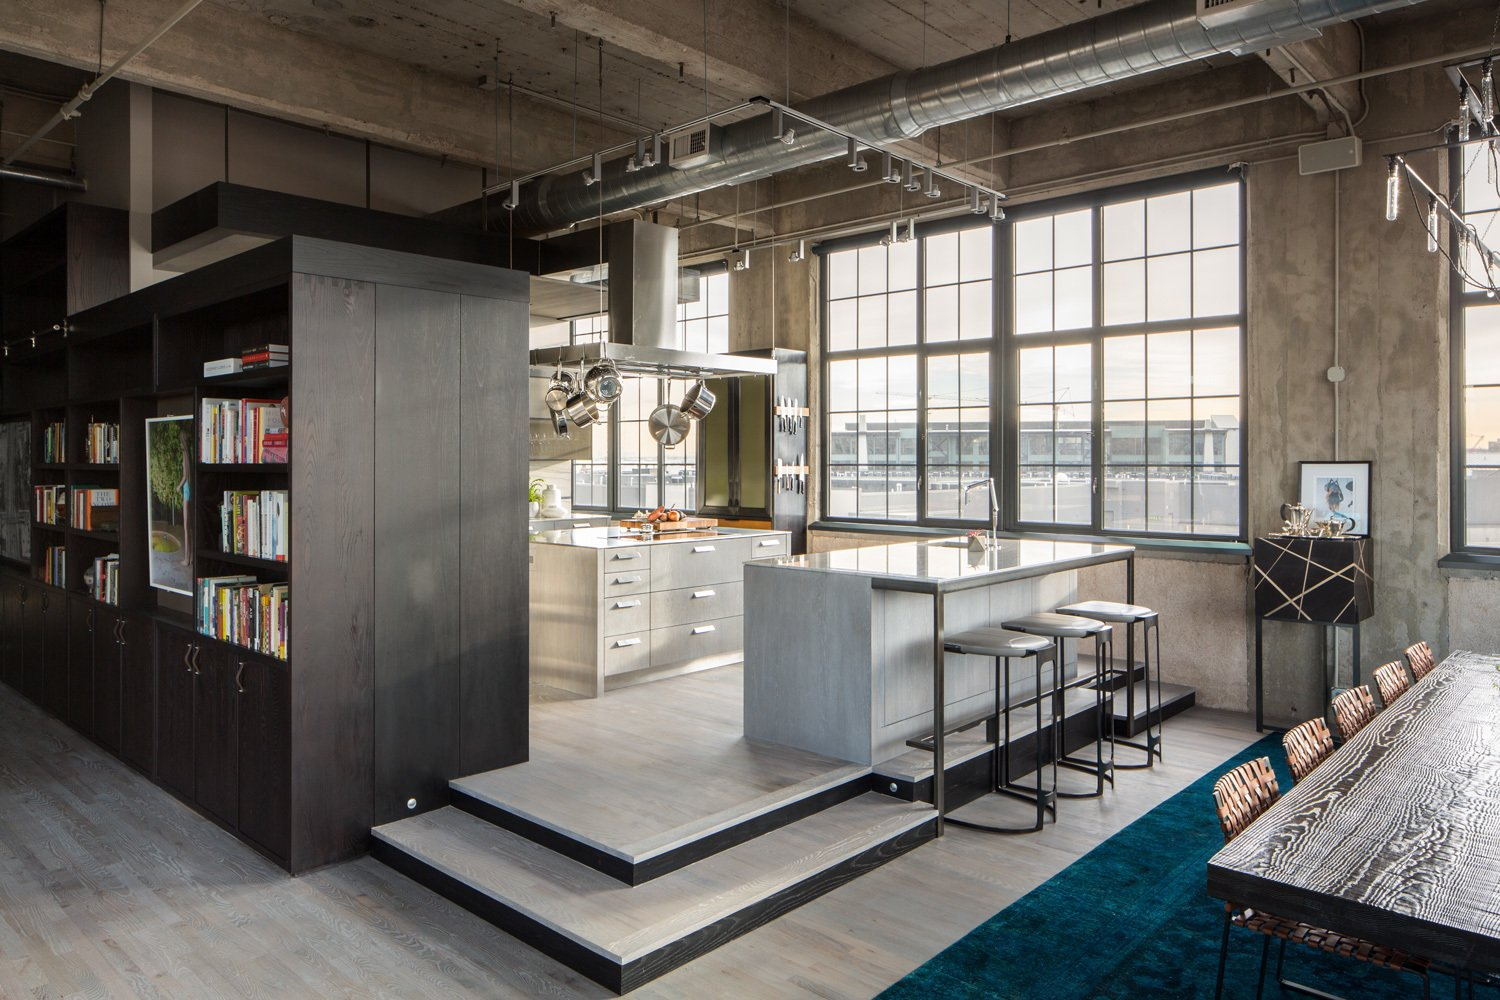 The 1920s building was converted into lofts in 2000. The client started out looking for new cabinet hardware and an improved connection between the laundry room and the guest bath, but ultimately decided to work with the firms on a full overhaul.  Industrial Loft in a Former Flour Mill by Allie Weiss